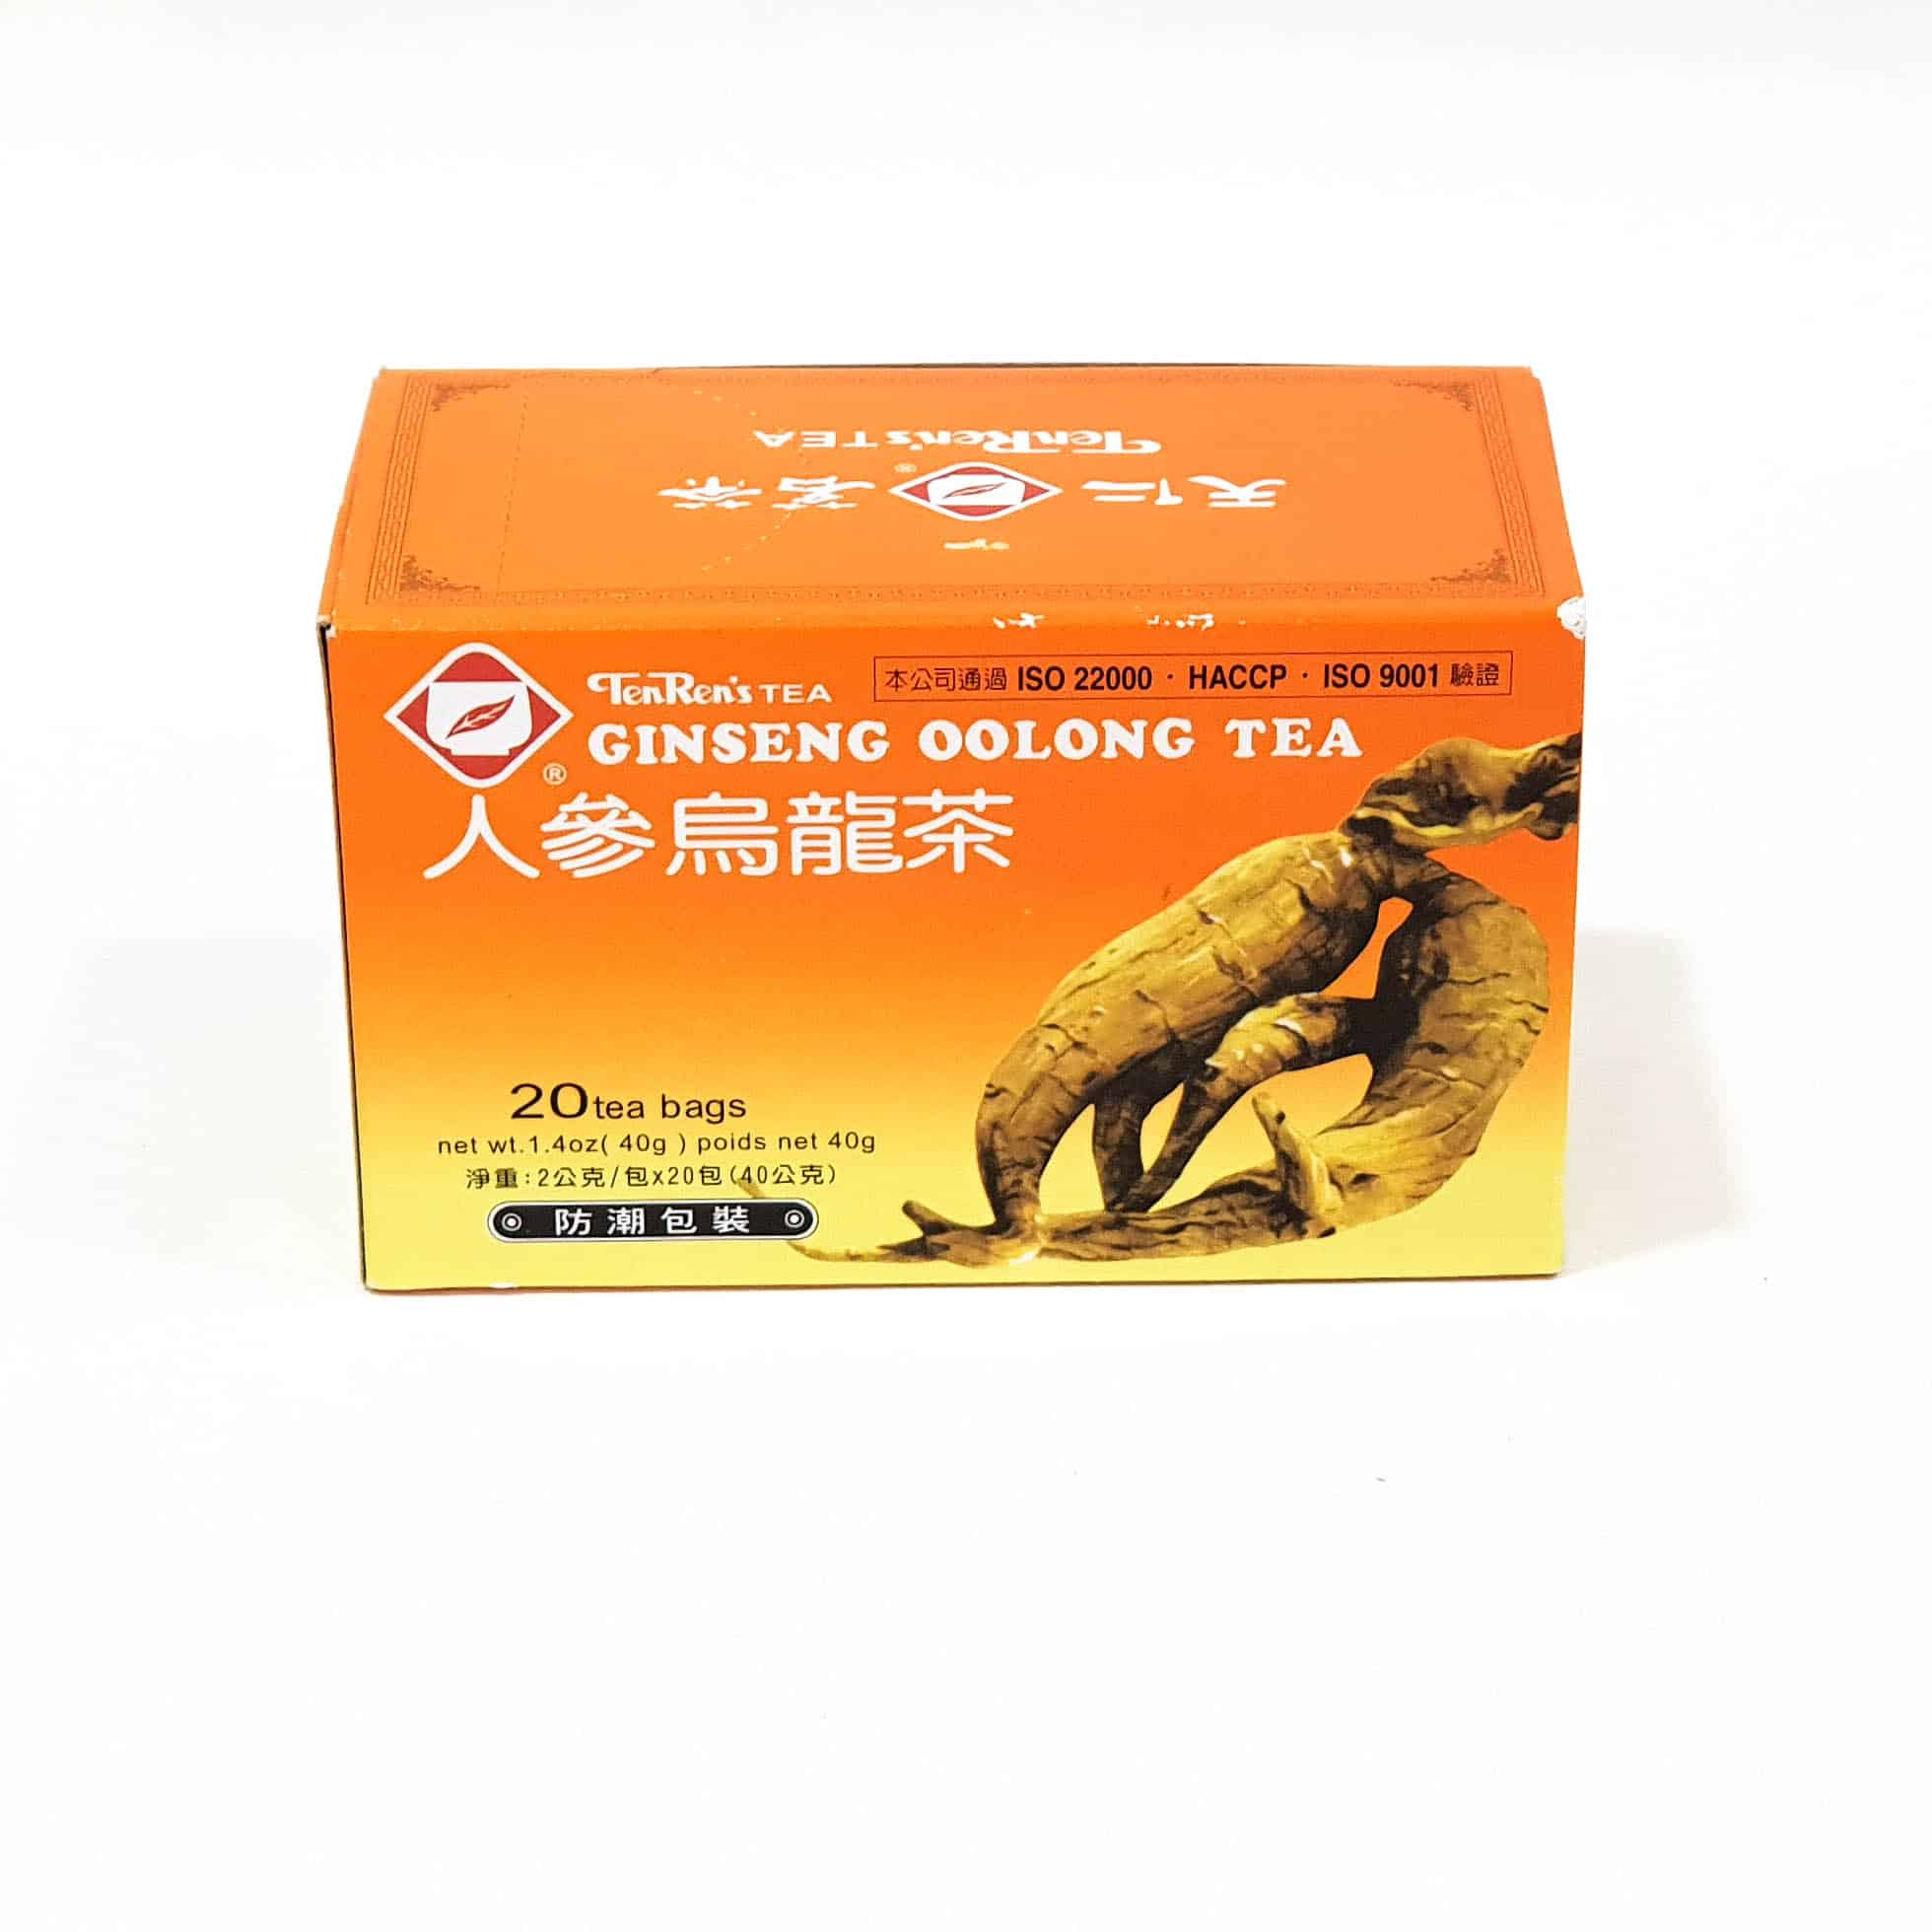 Ginseng Oolong Tea Bags (20 pk)